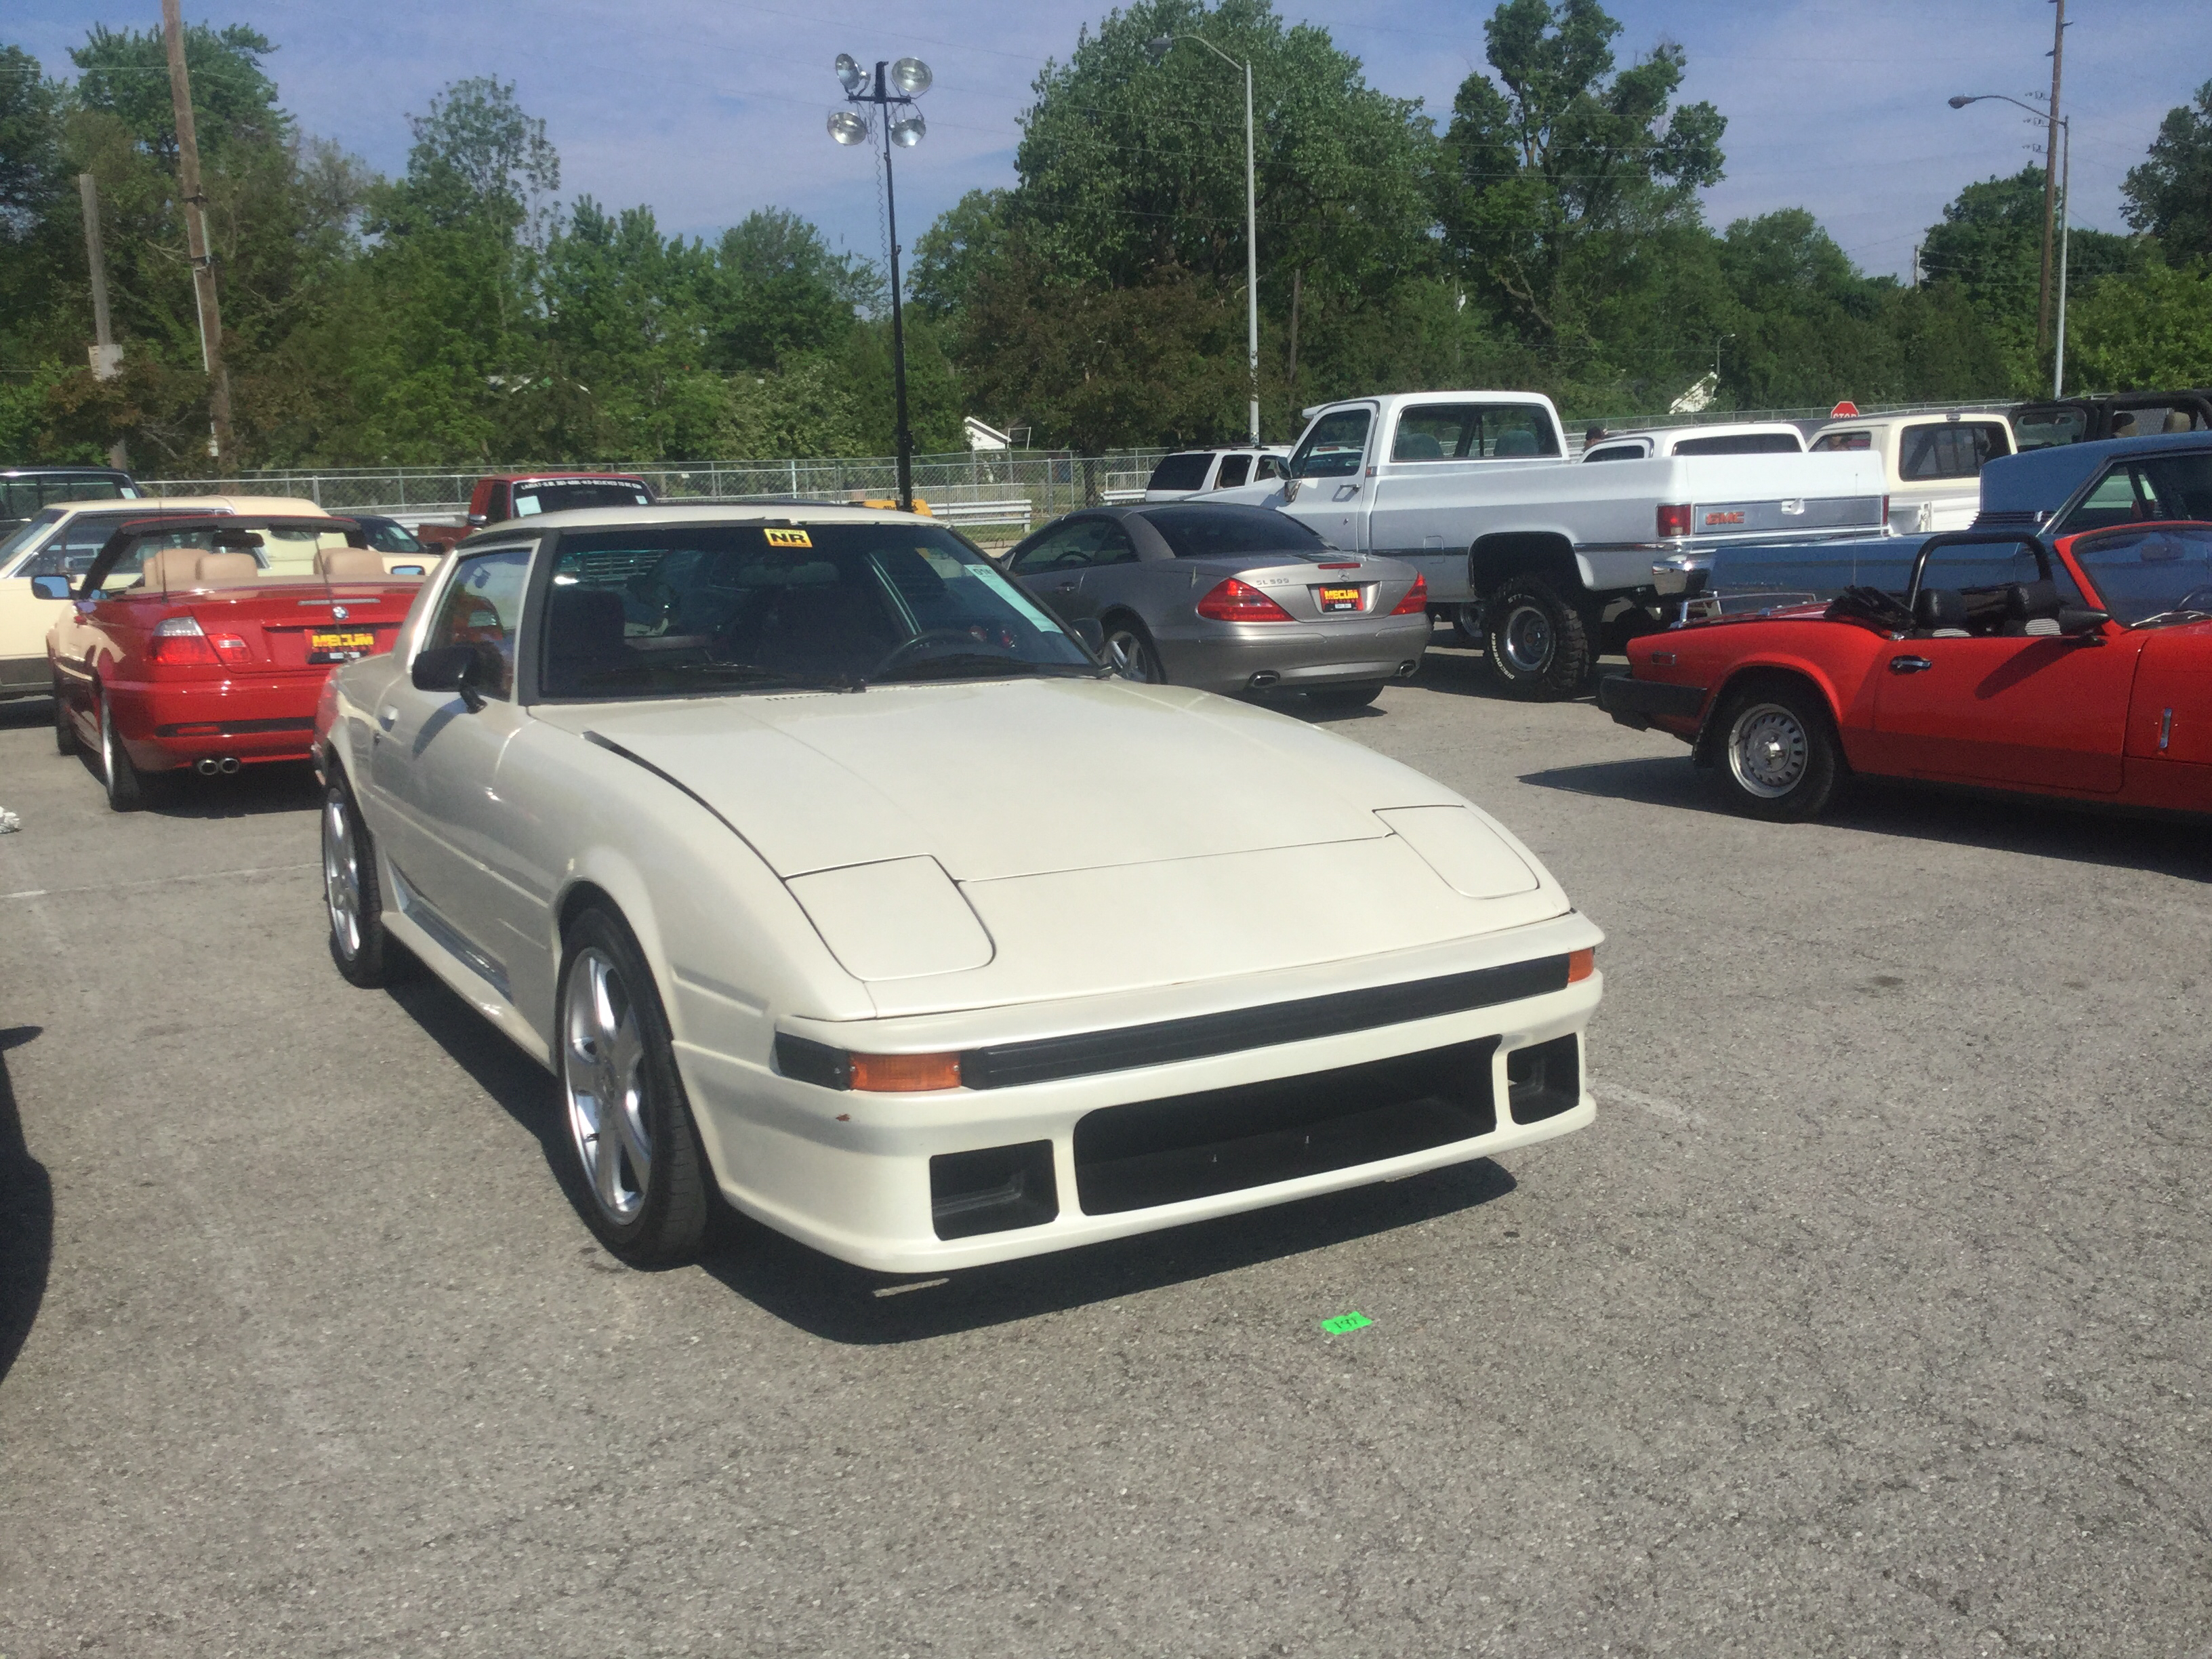 1983 Mazda RX-7 Values | Hagerty Valuation Tool®